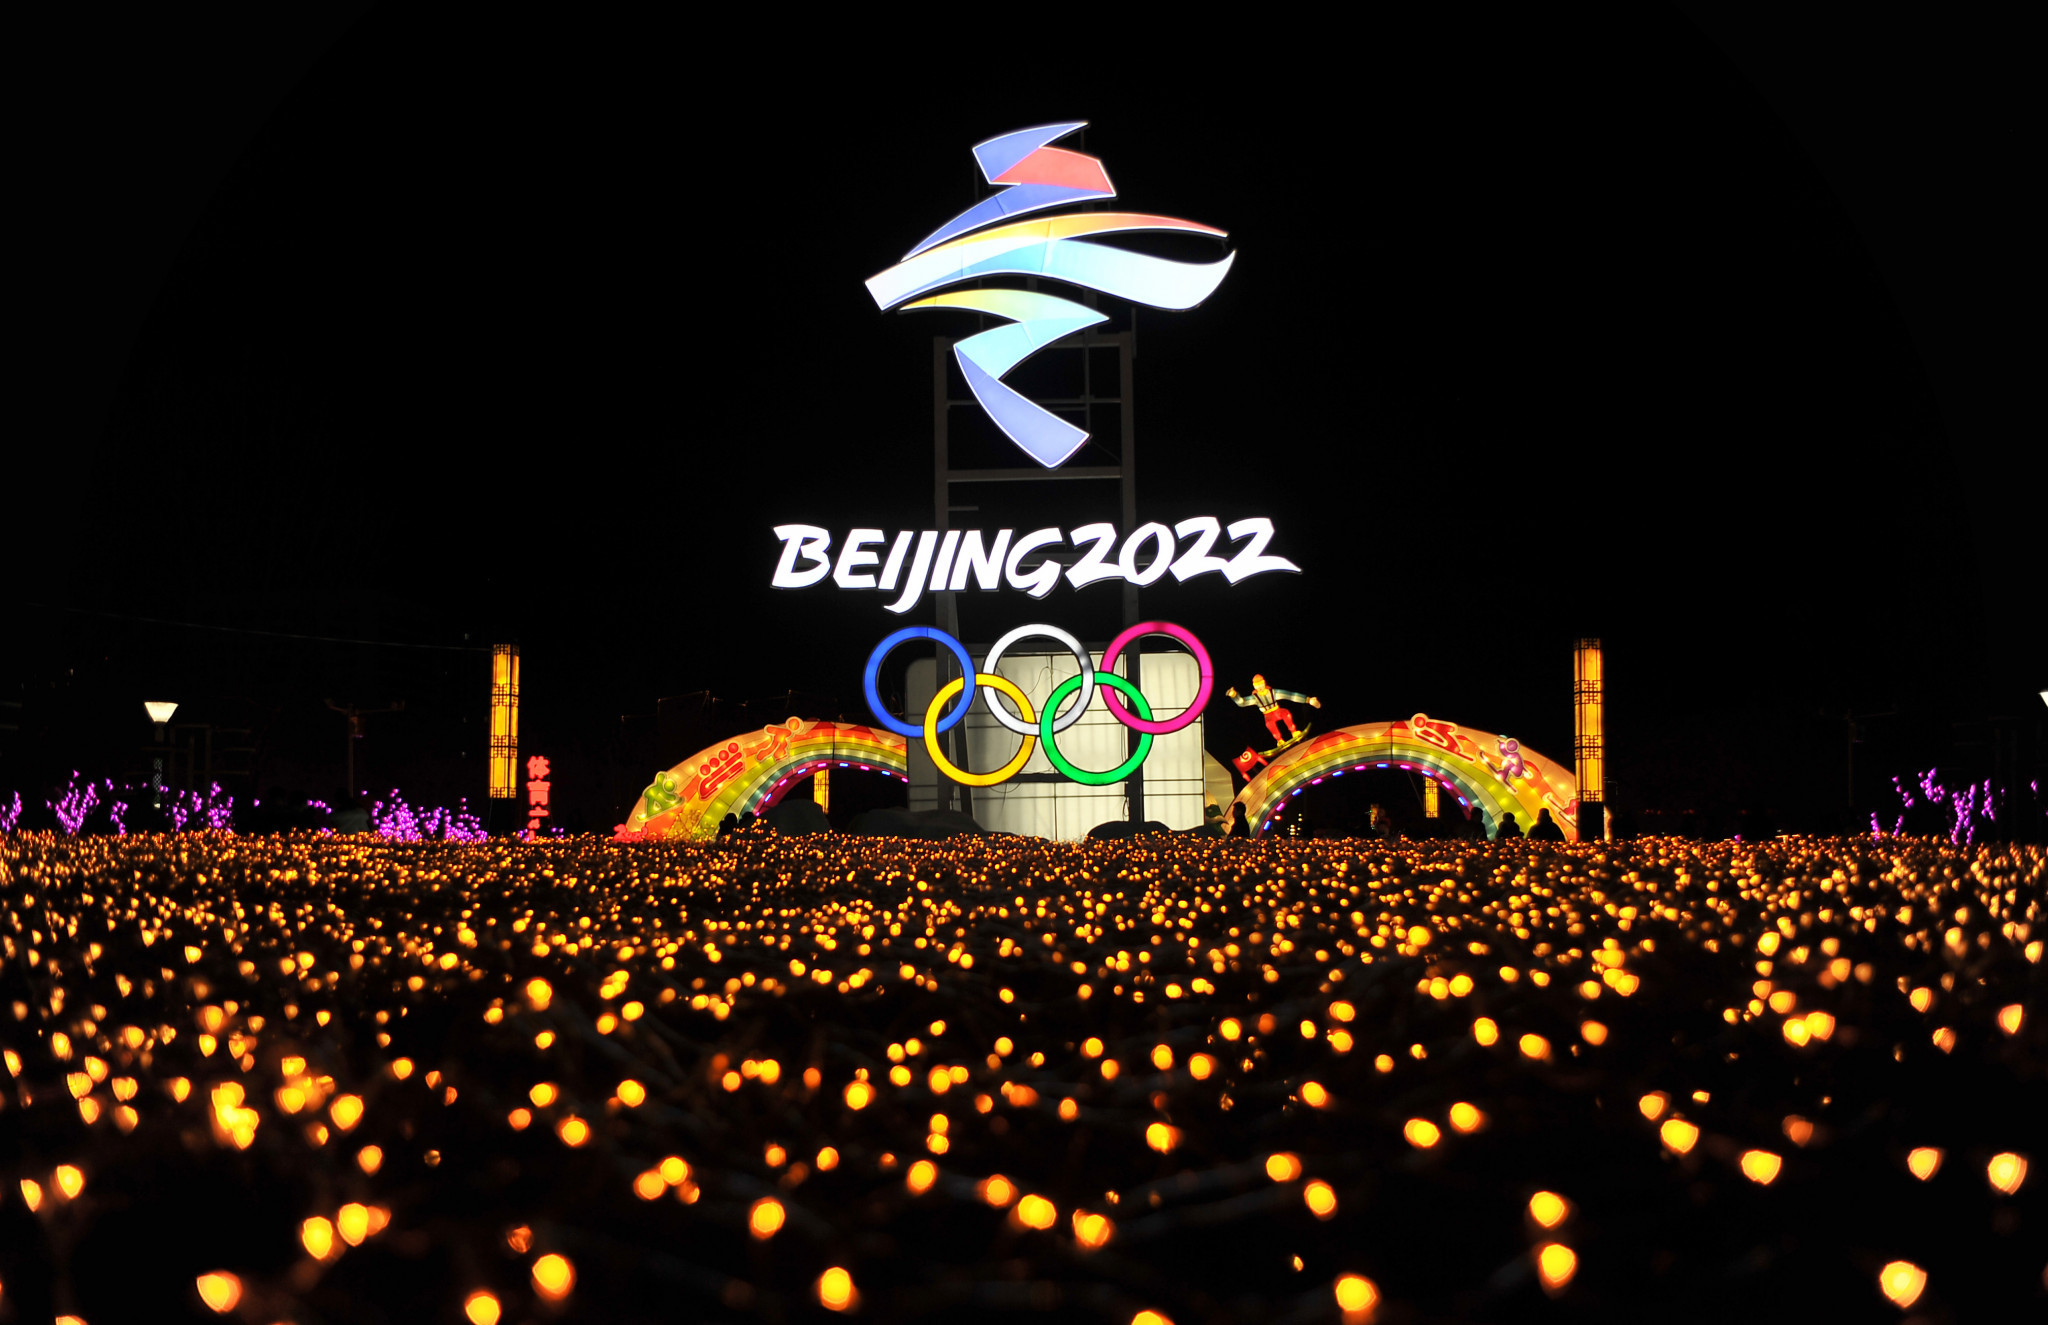 A Chinese official who had a role in preparations for the Beijing 2022 Winter Olympics and Paralympics has reportedly been charged with corruption ©Getty Images